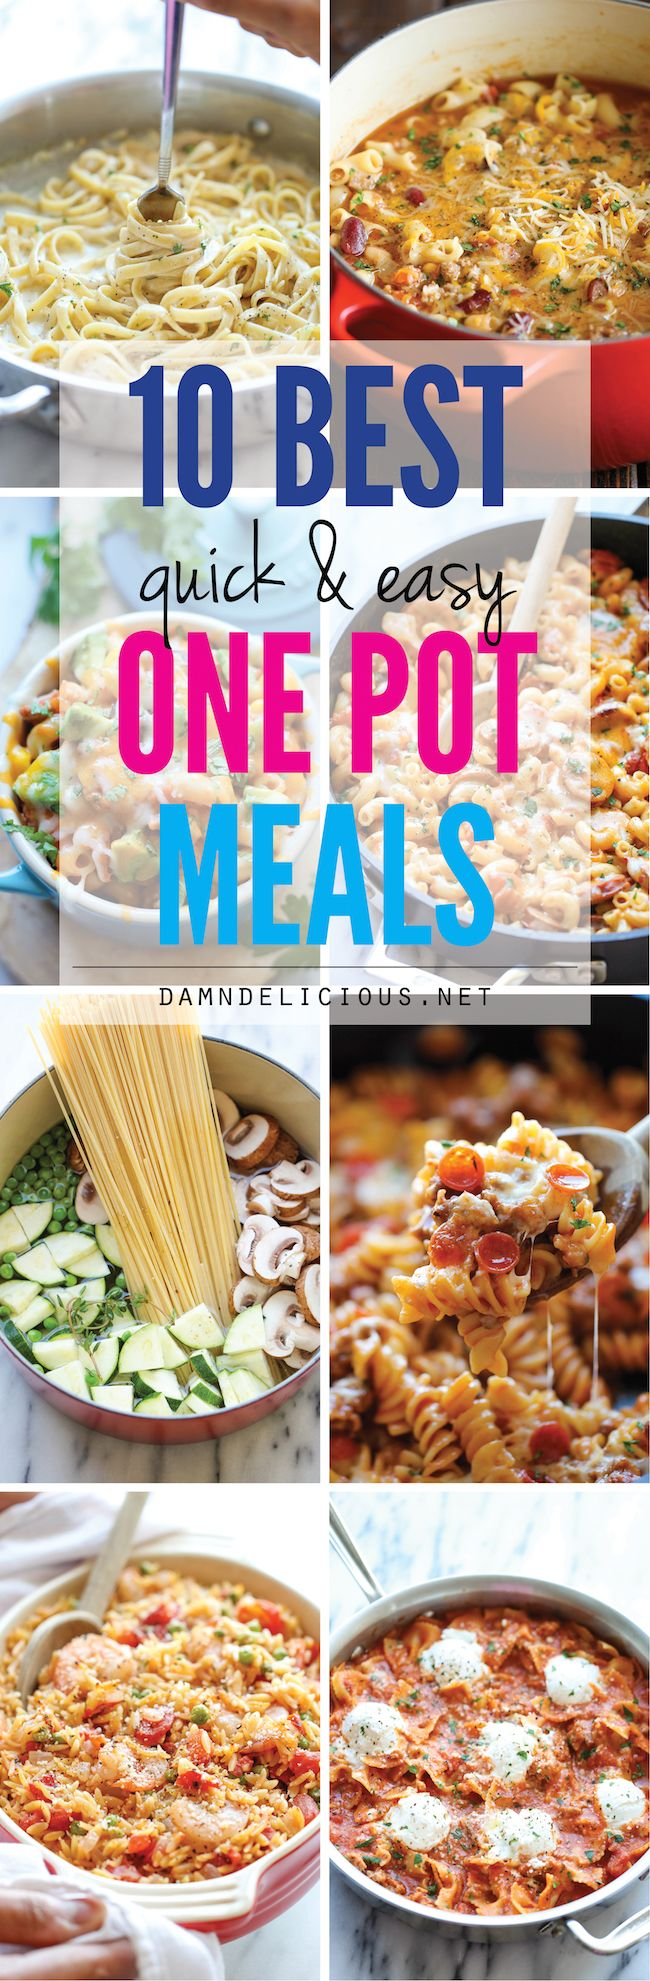 10 Quick and Easy One Pot Meals - No-fuss one pot meals for those busy nights when you just don't have the time. Easy peasy with only one pan to clean up!